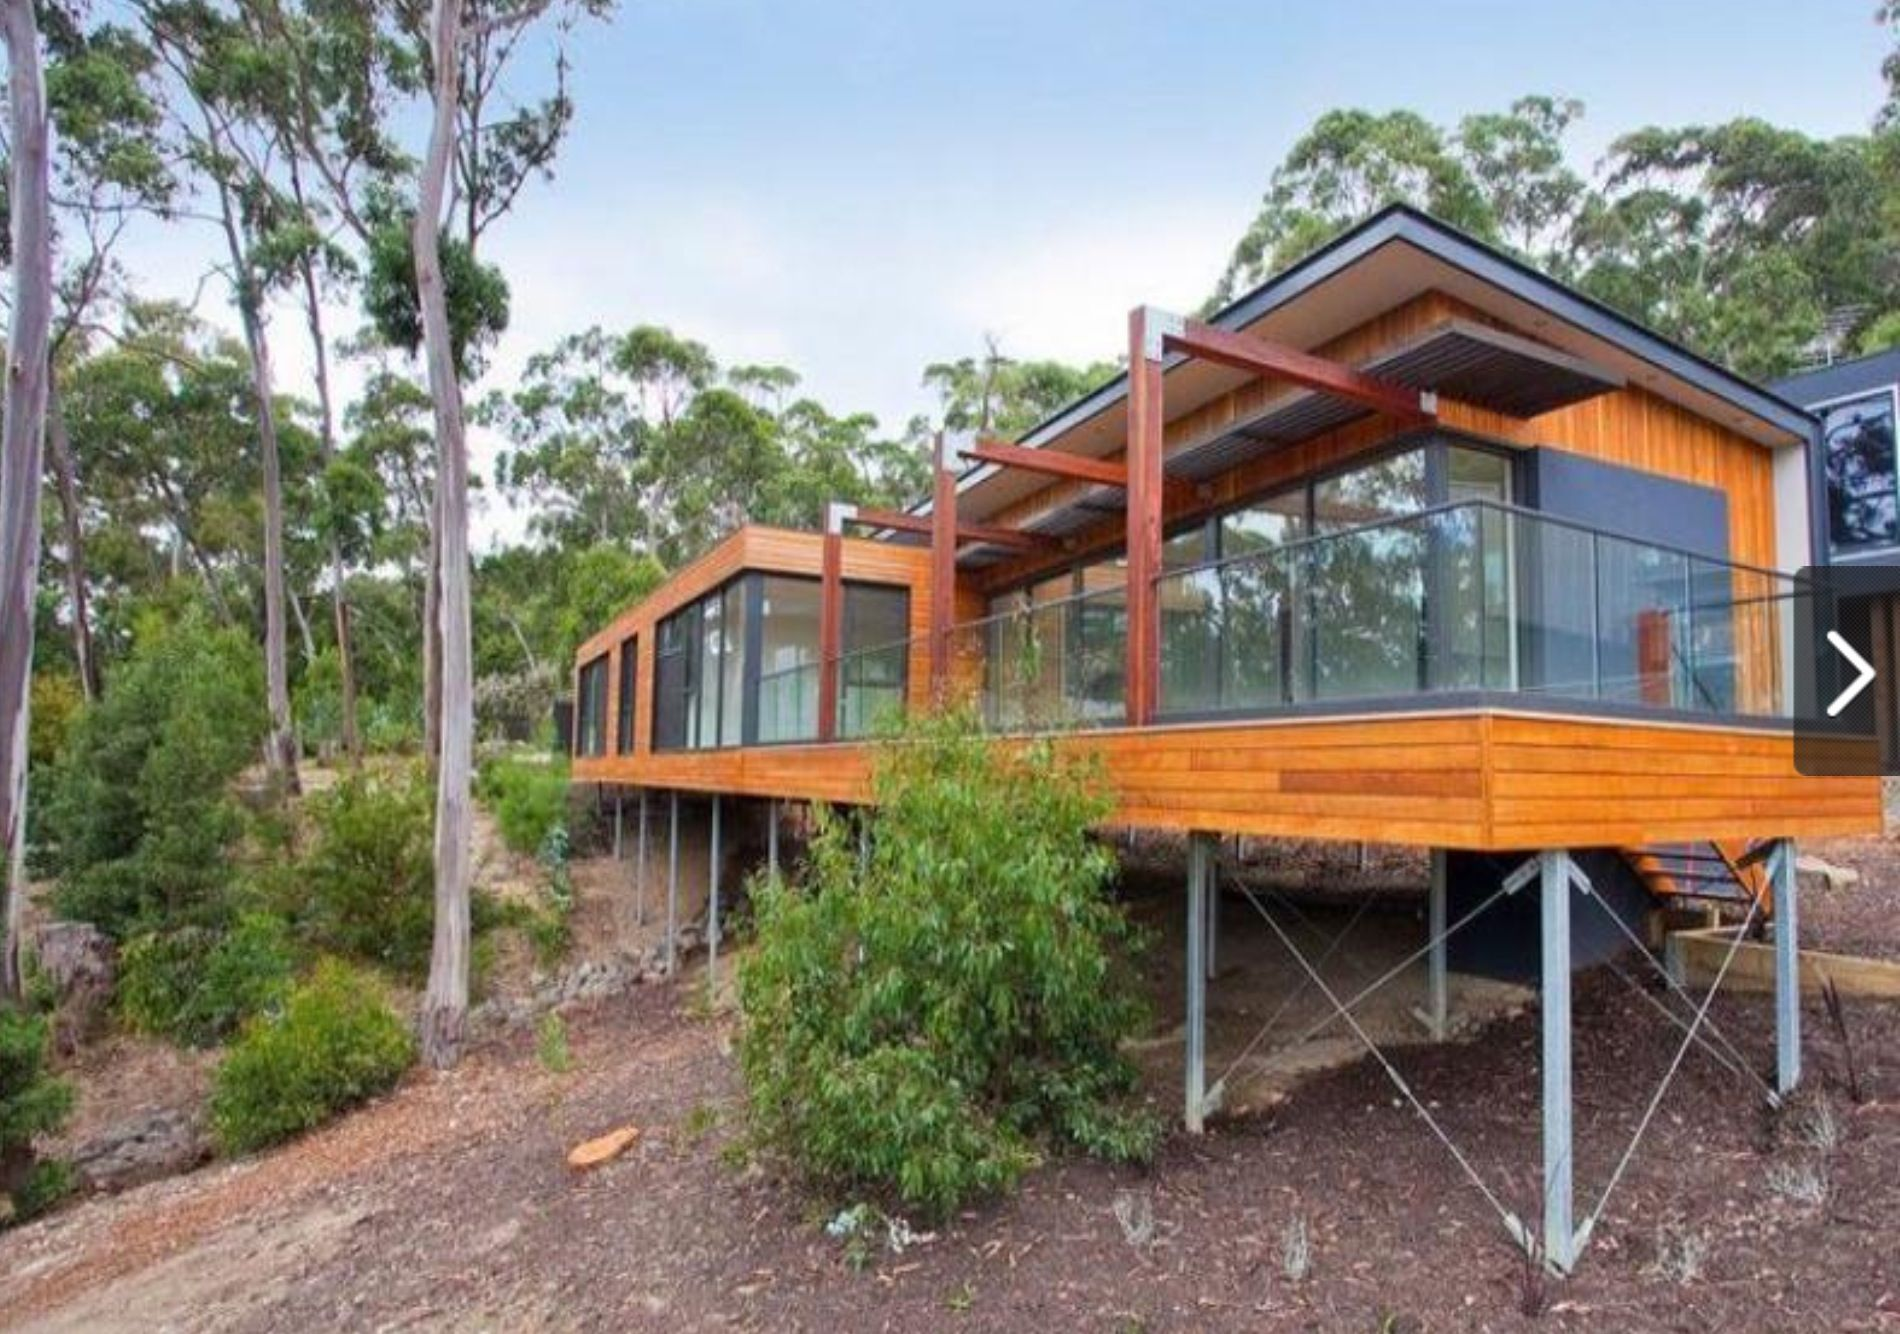 Building home on steep slope house on slope australia